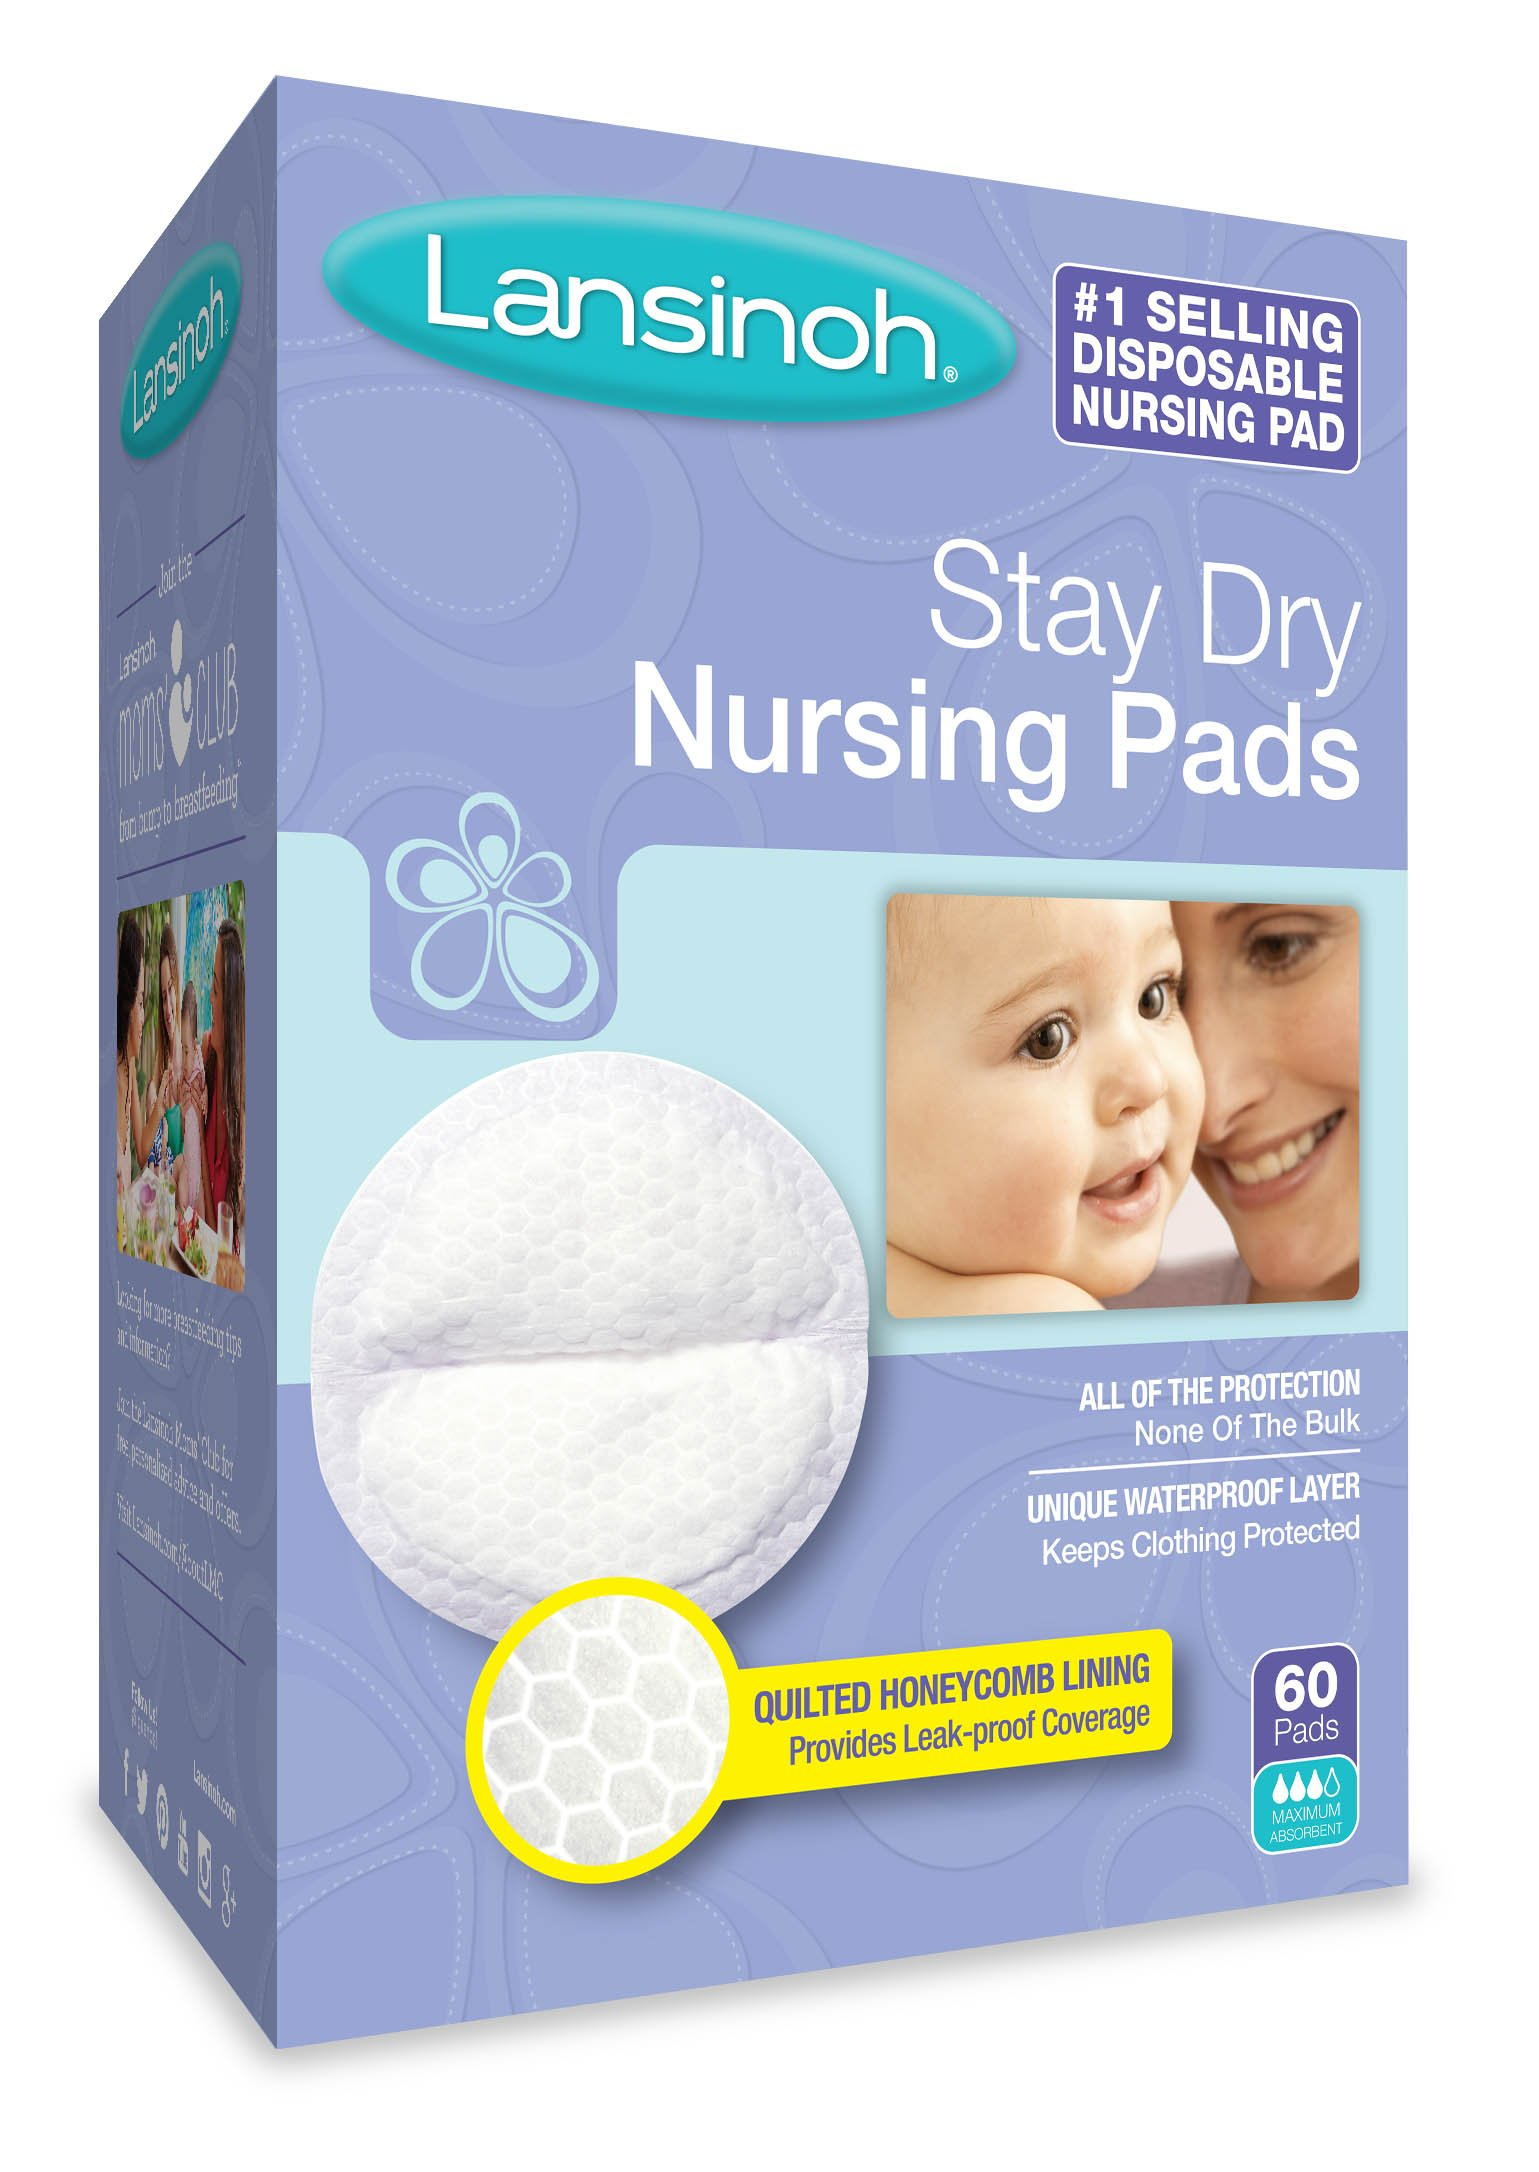 Lansinoh Stay Dry Disposable Nursing Pads, Number One Selling Breastfeeding Pad For Breastfeeding Mothers, Leak Proof Protection, Maximun Comfort and Discretion, 4 Packs of 60 Count (240 Count)